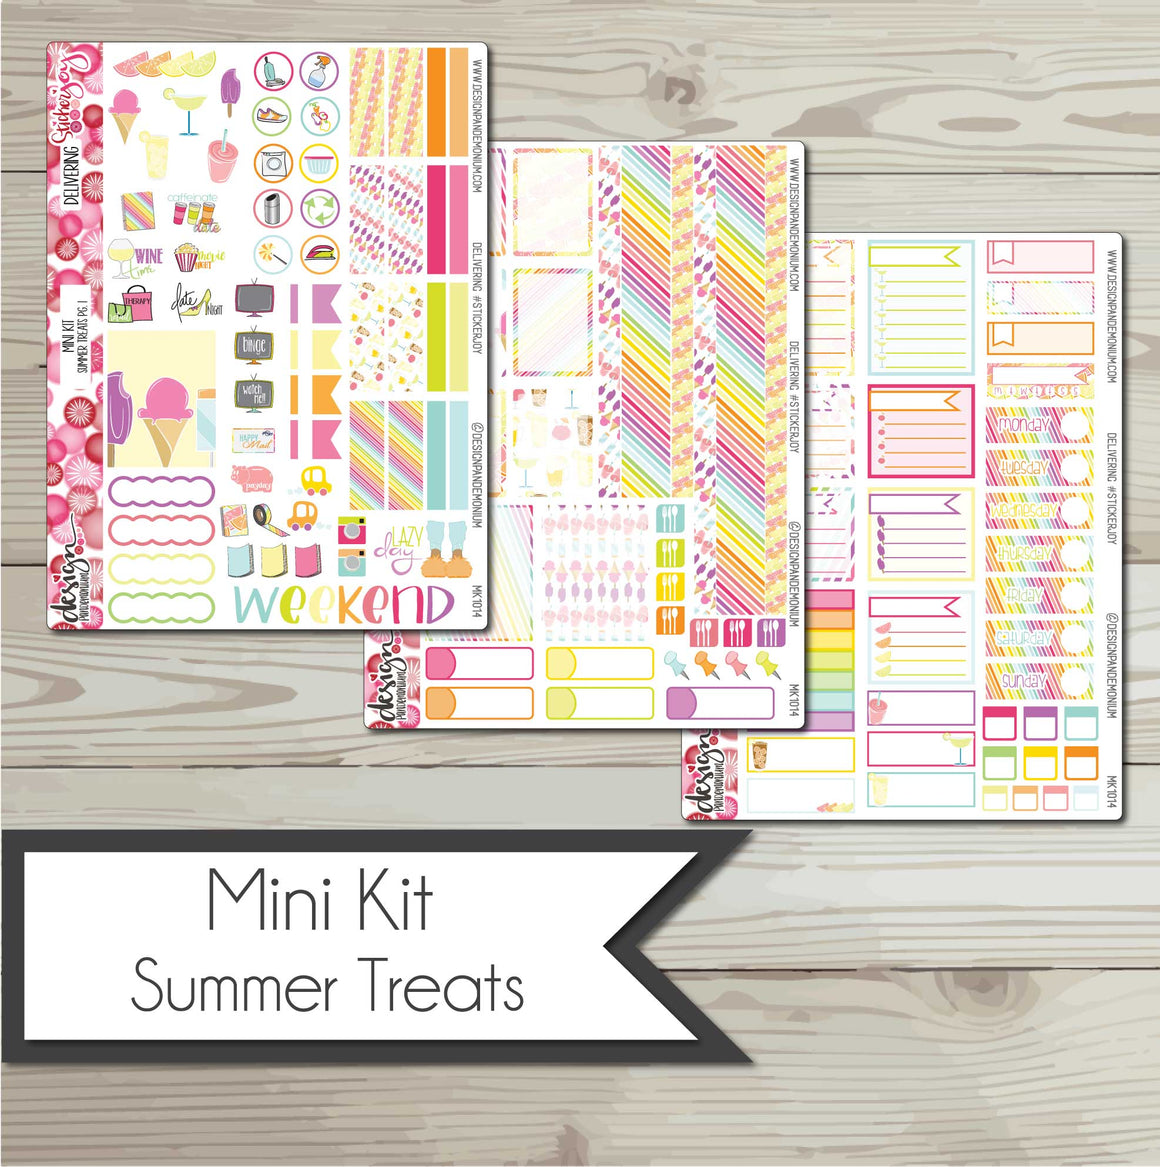 Mini Kit - Summer Treats